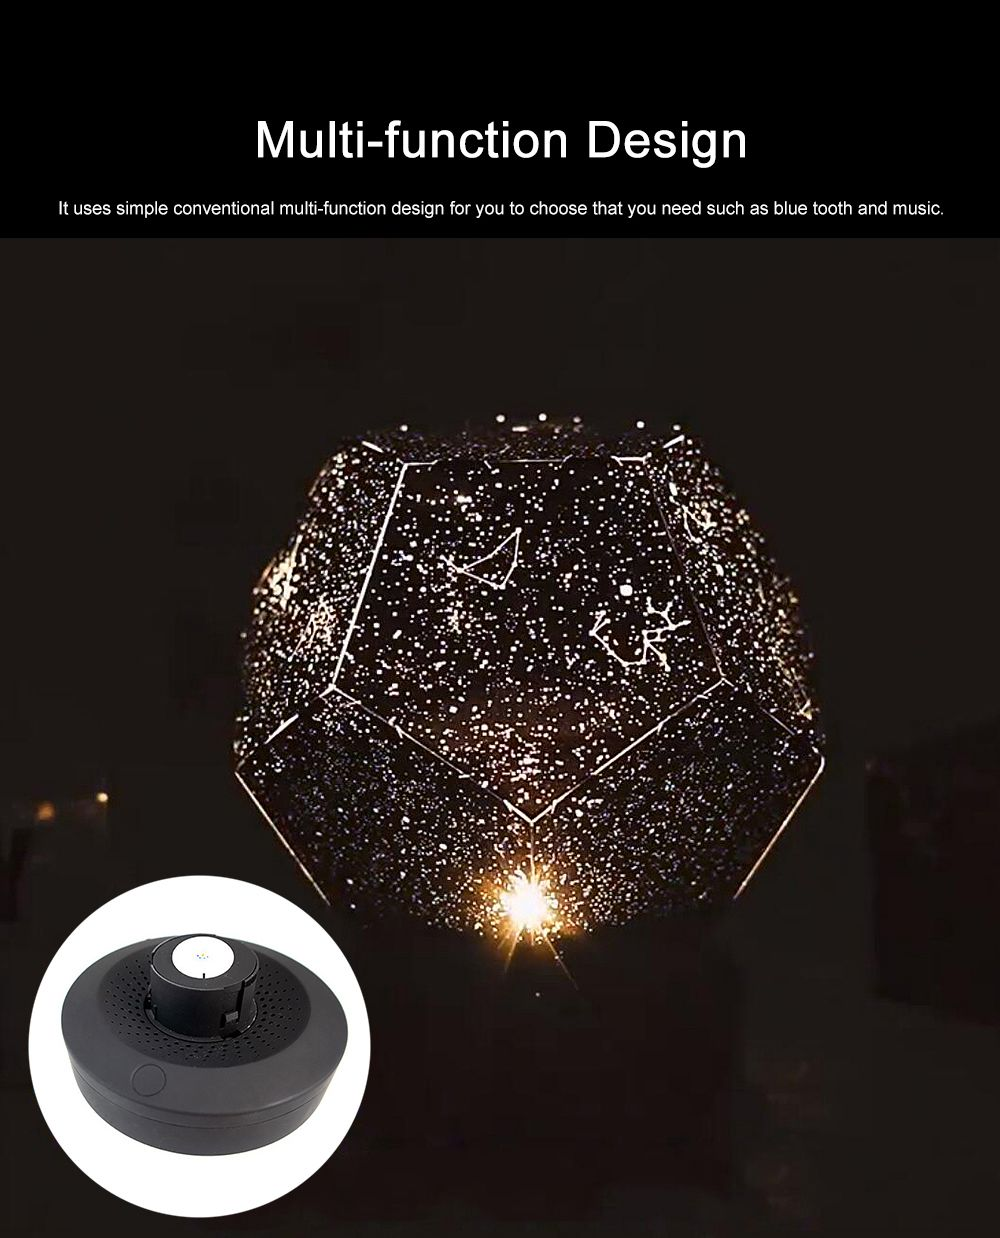 LED Rotation Star Projection Lamp Light Remote Control Design Free Installation Insert Type Lamp Shade Light with Starry Sky Box 3